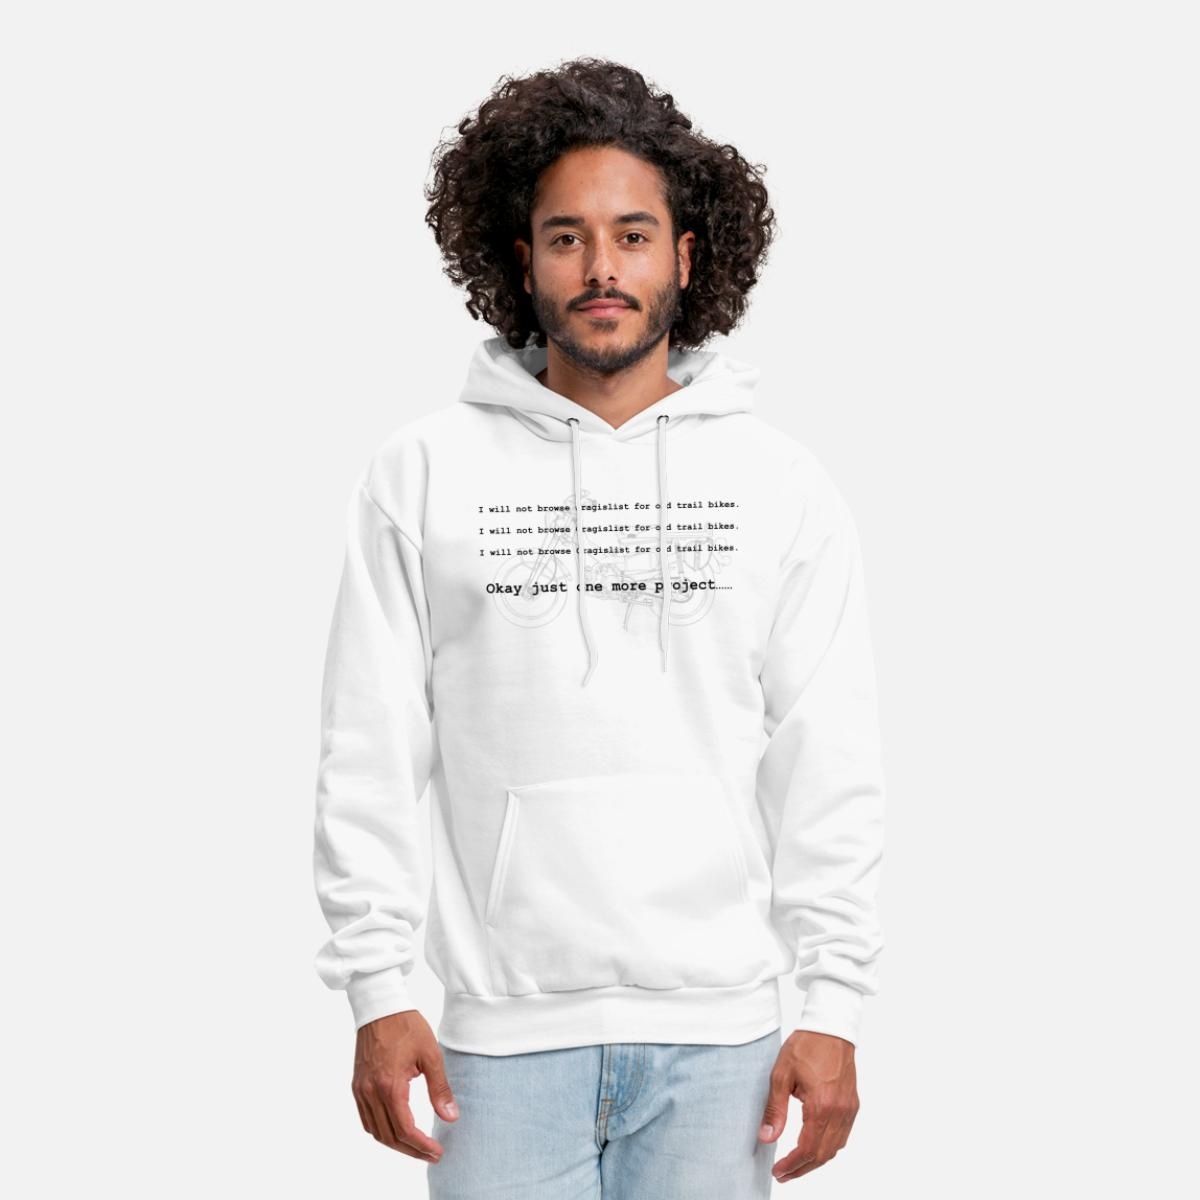 Done Browsing Craigslist for Trail Bikes Men's Hoodie - white